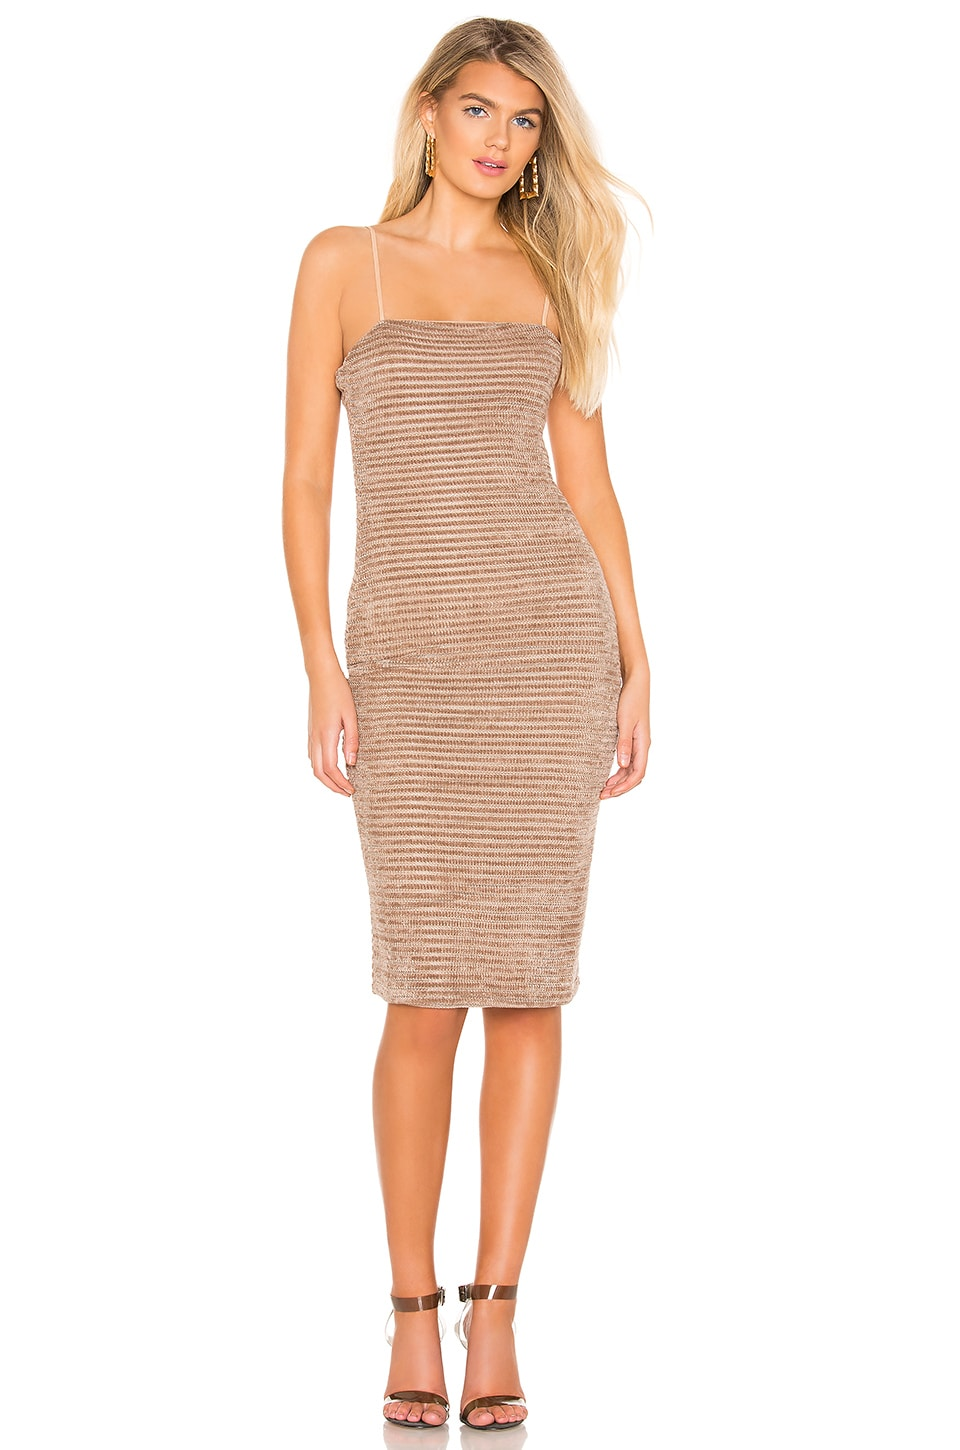 Privacy Please Catrine Midi Dress in Hazelnut